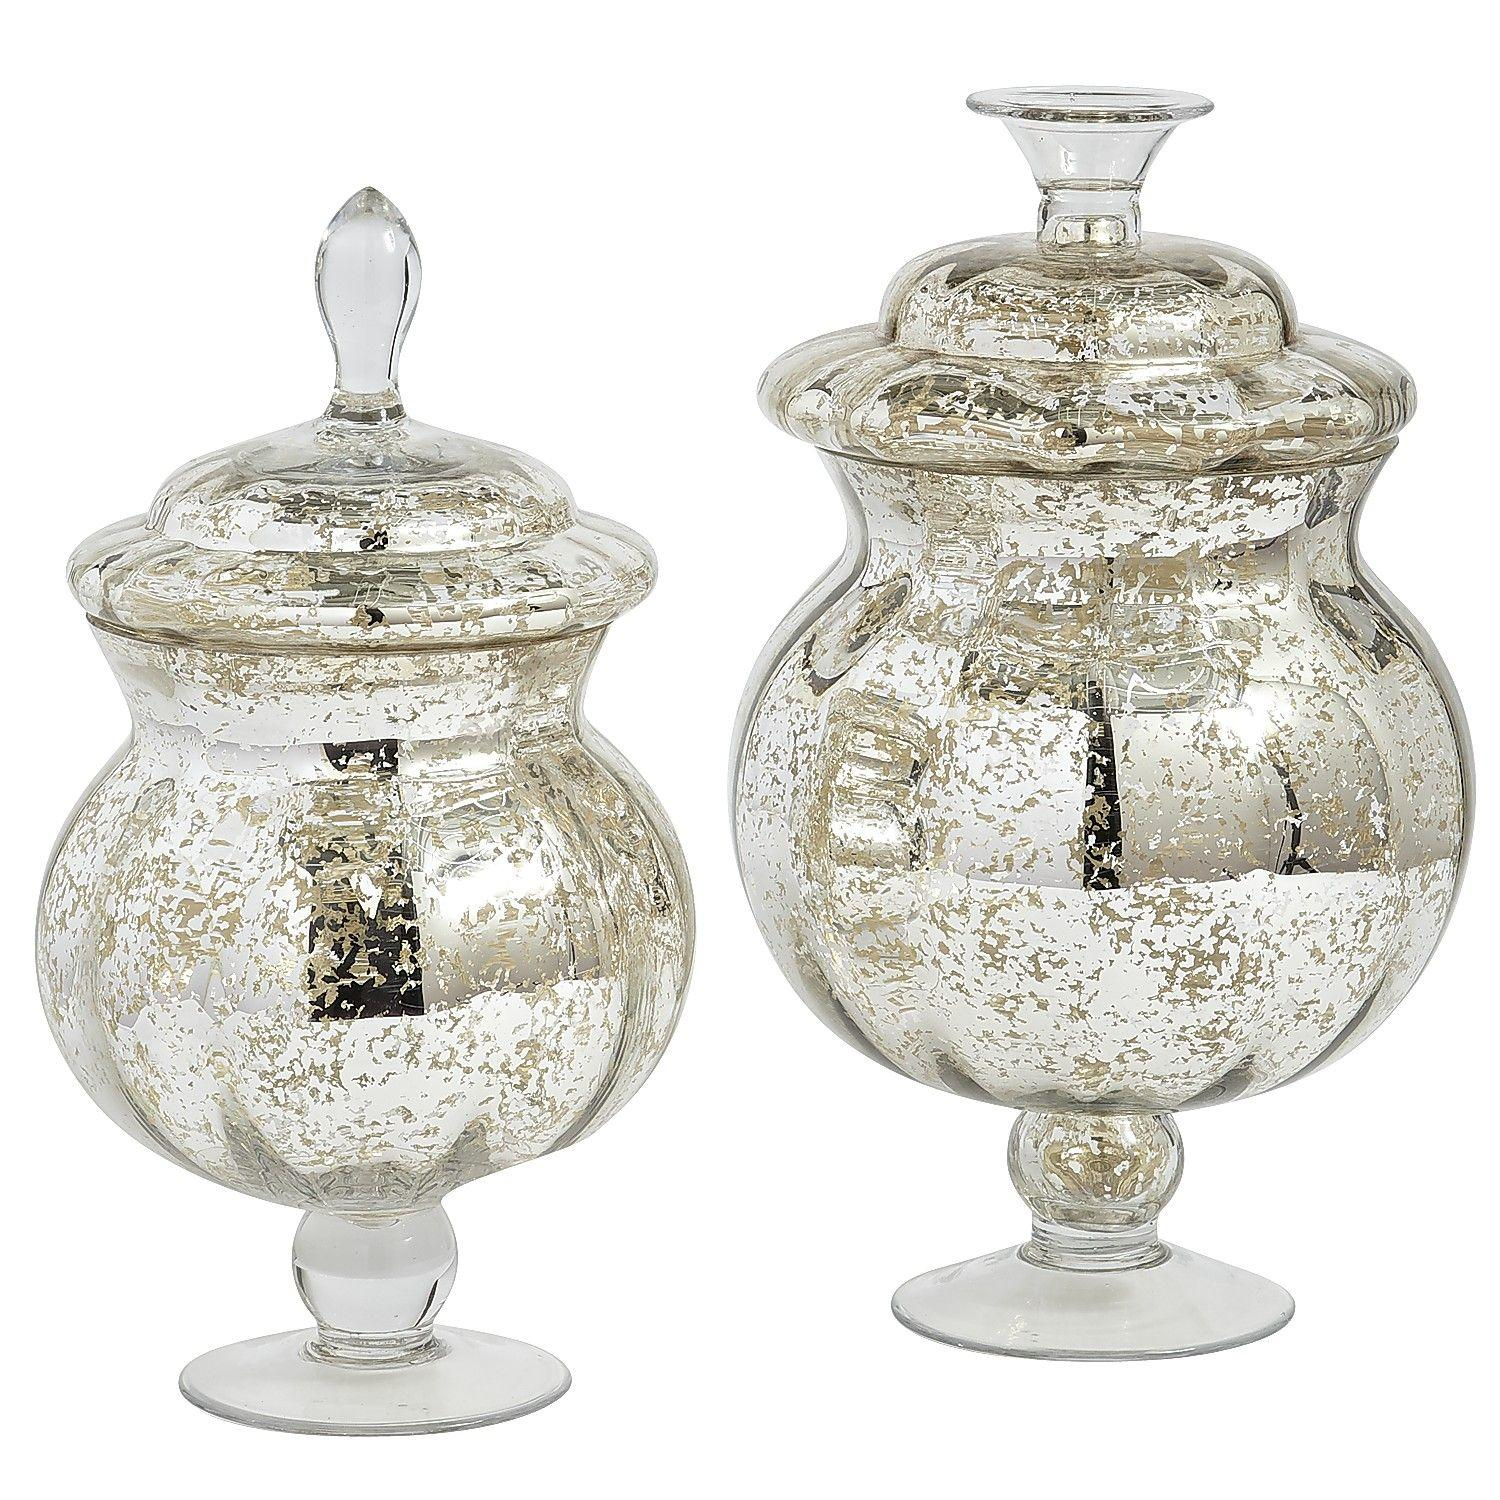 Mercury Glass Apothecary Jars from Pier 1 imports